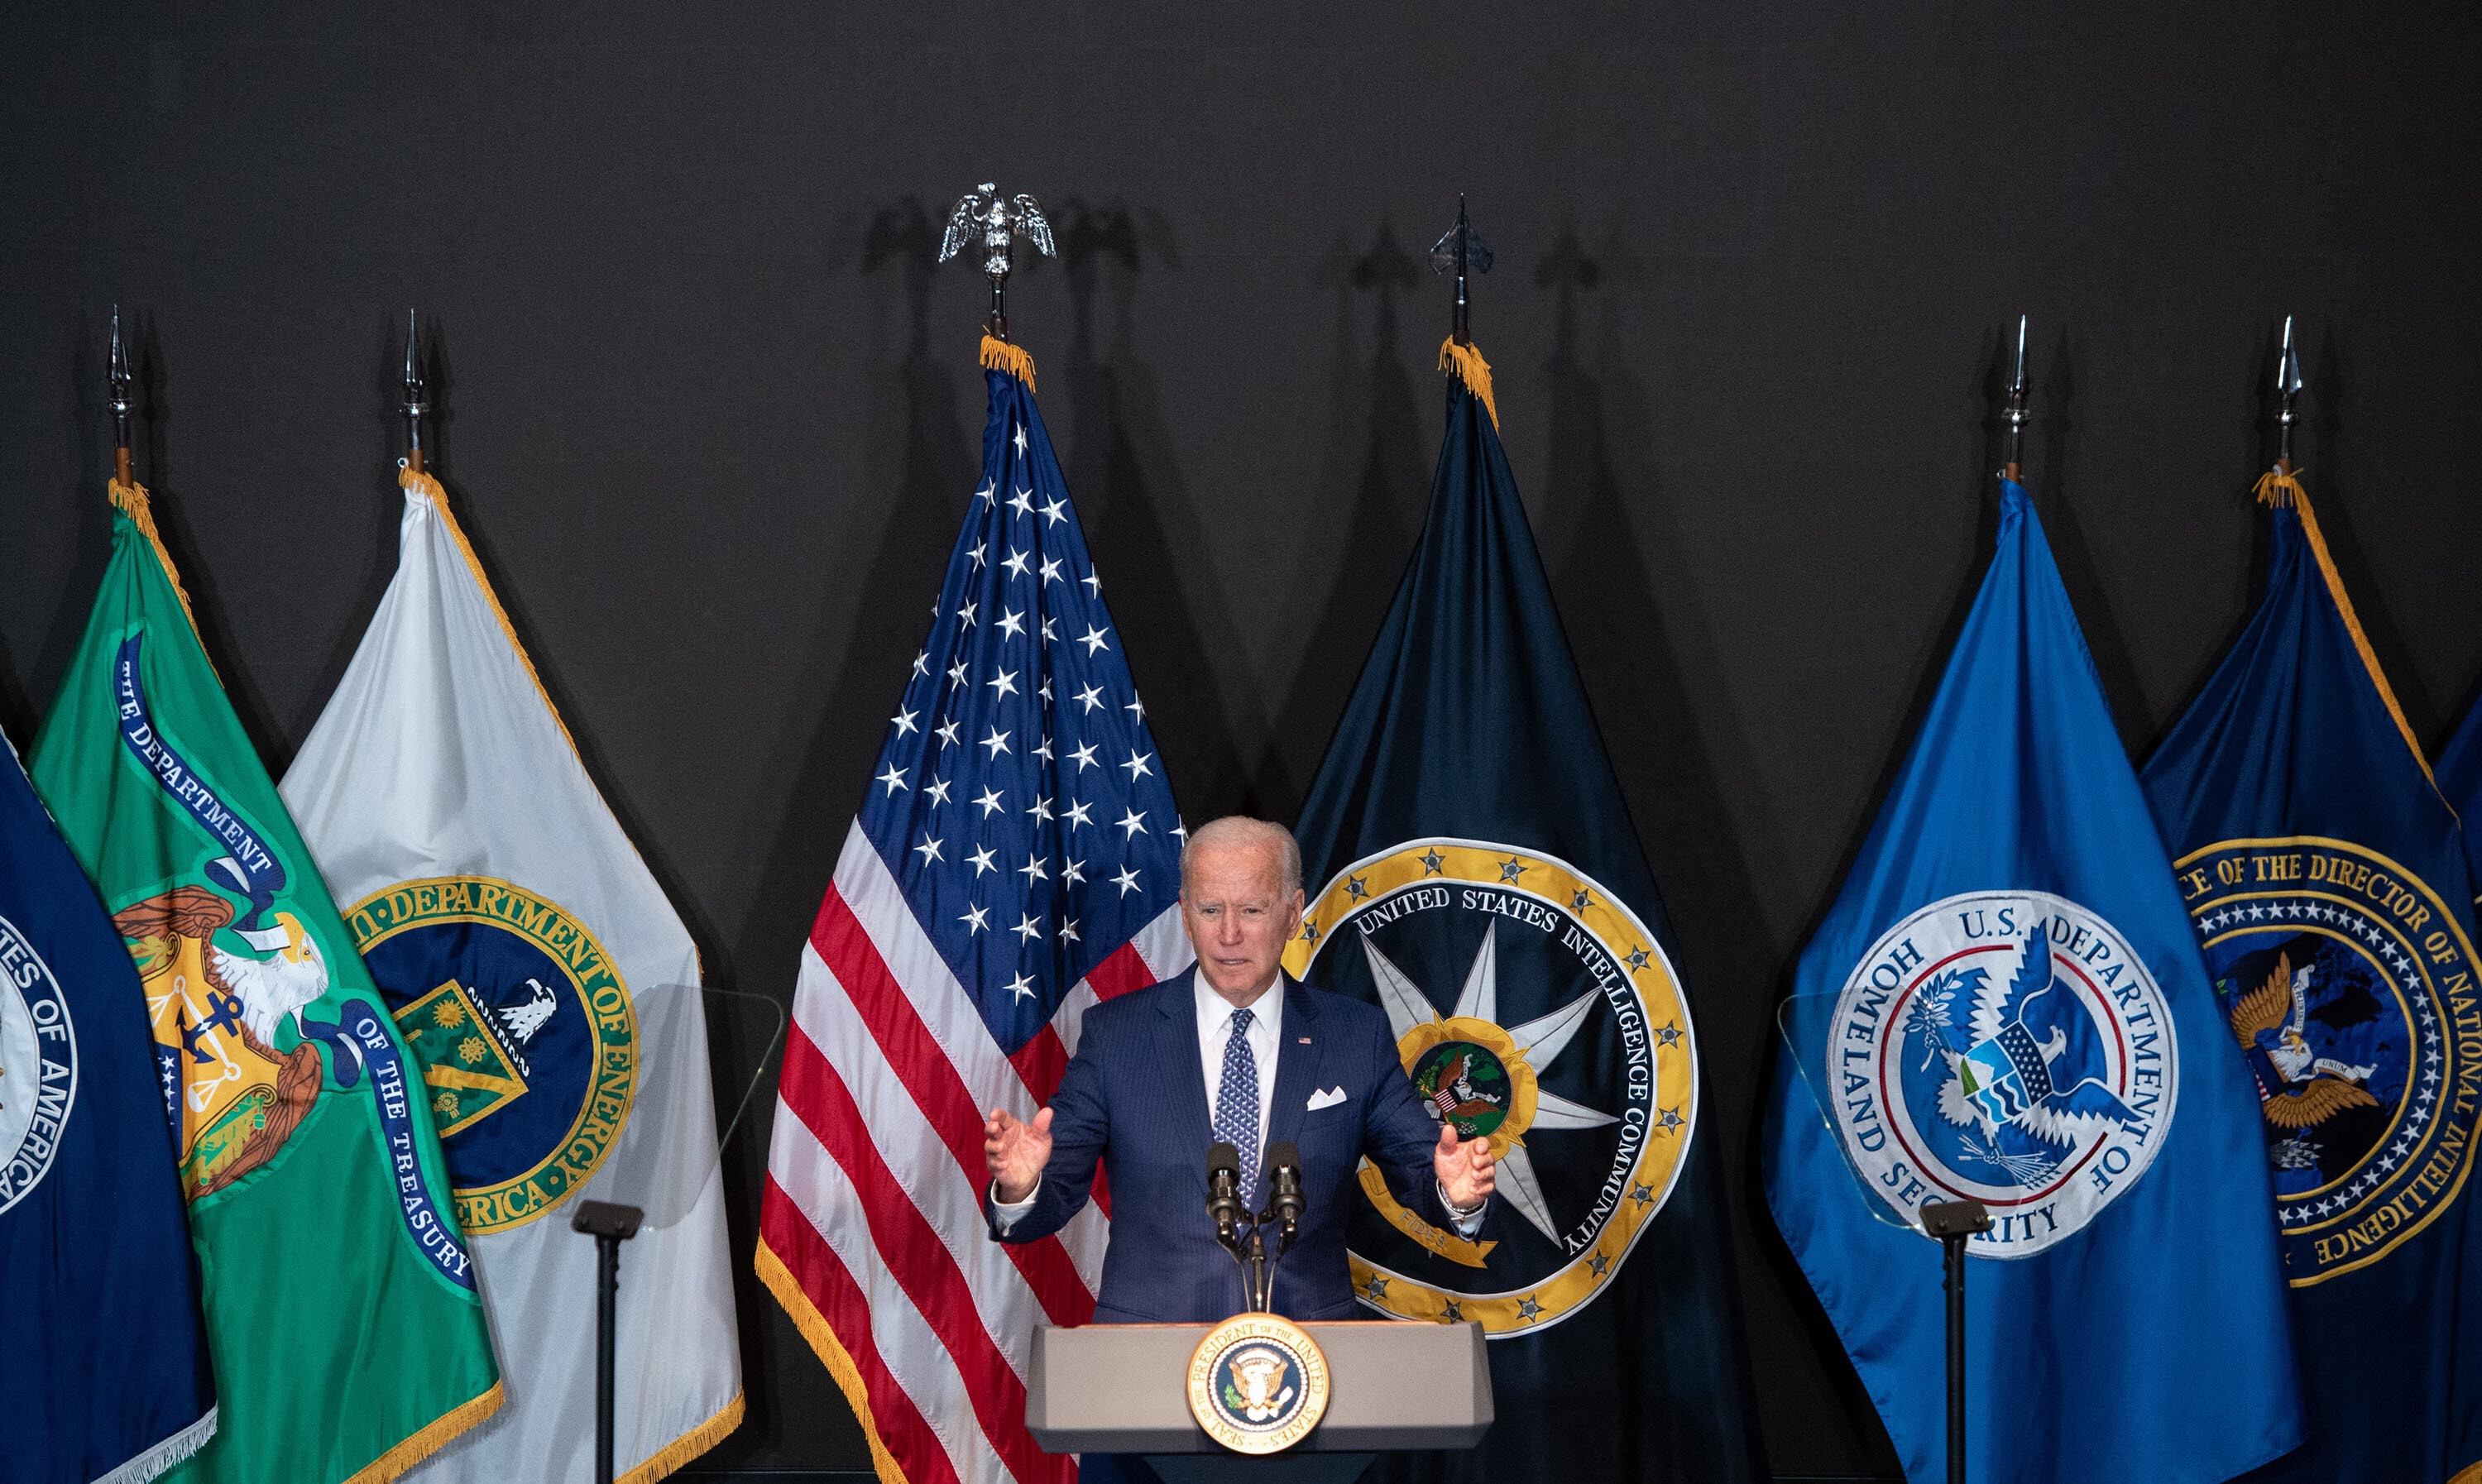 Masks and vaccine mandate show CDC and Biden taking emergency action amid Covid-19 surge